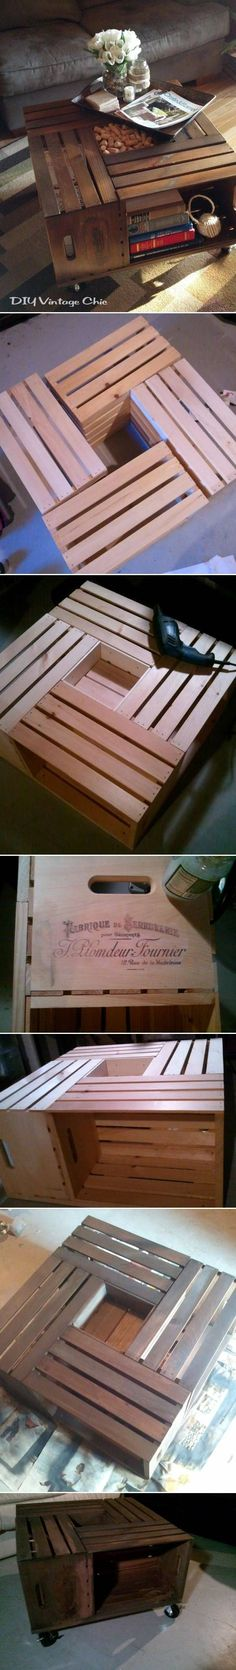 DIY storage coffee table out of wine crates.